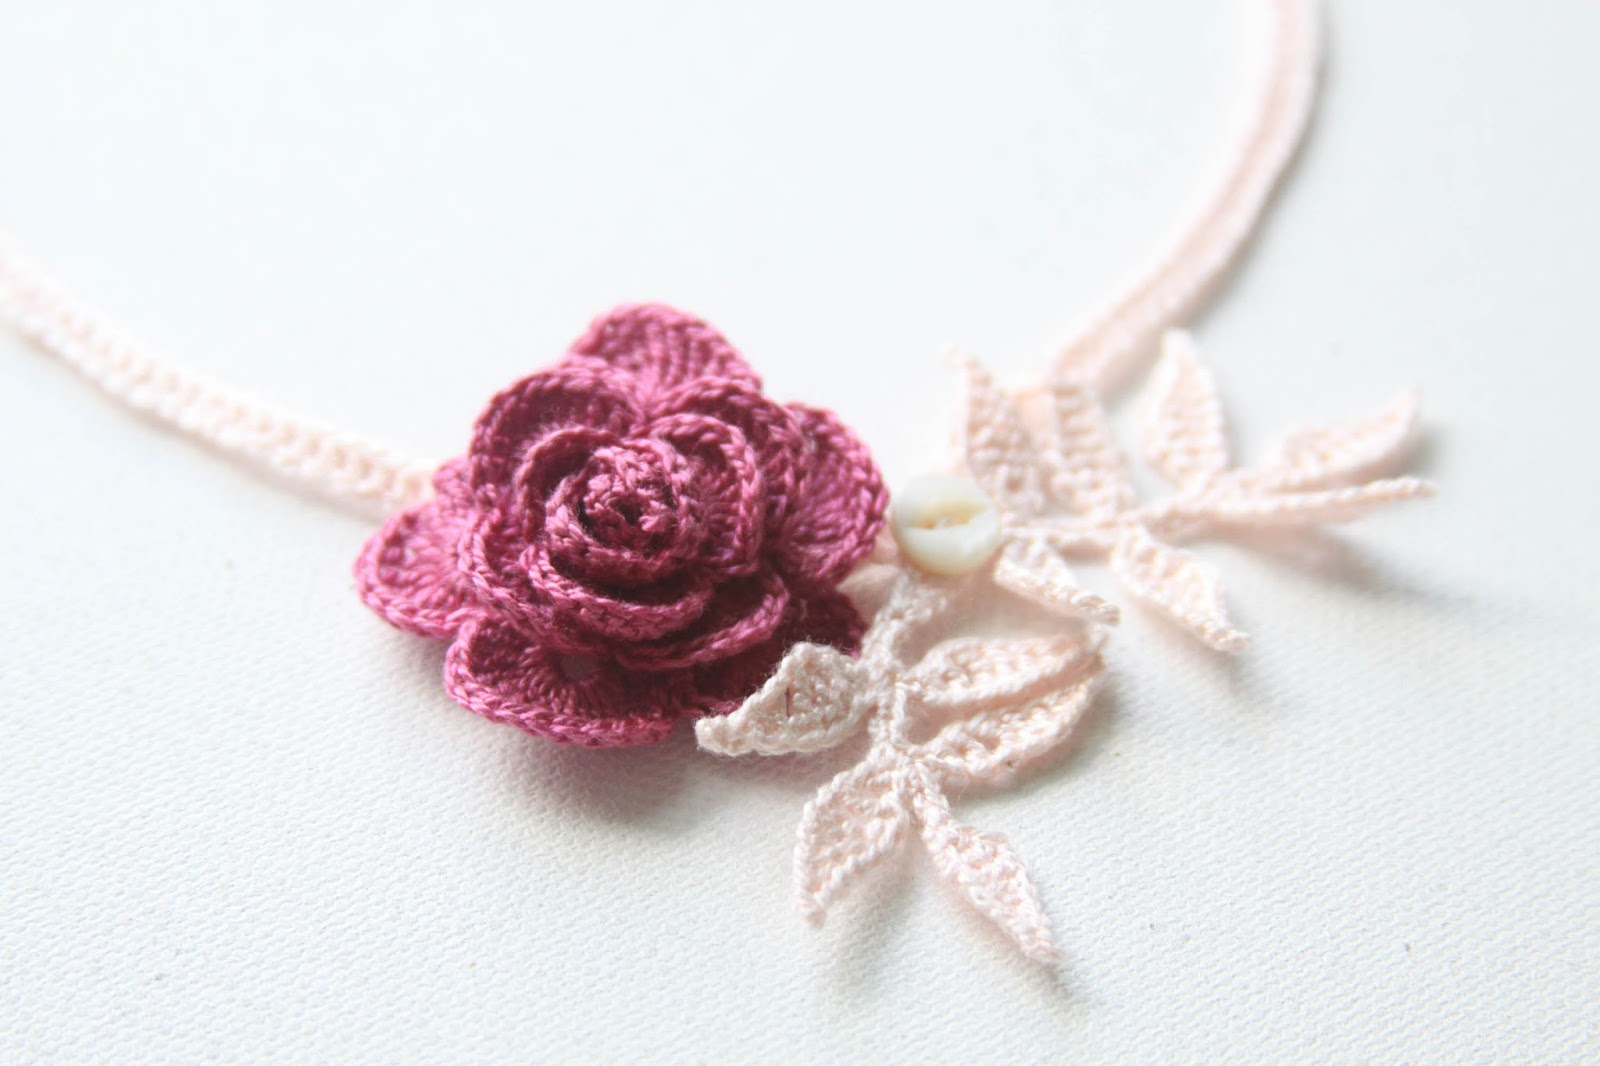 my crocheted rose pattern, a gift for you